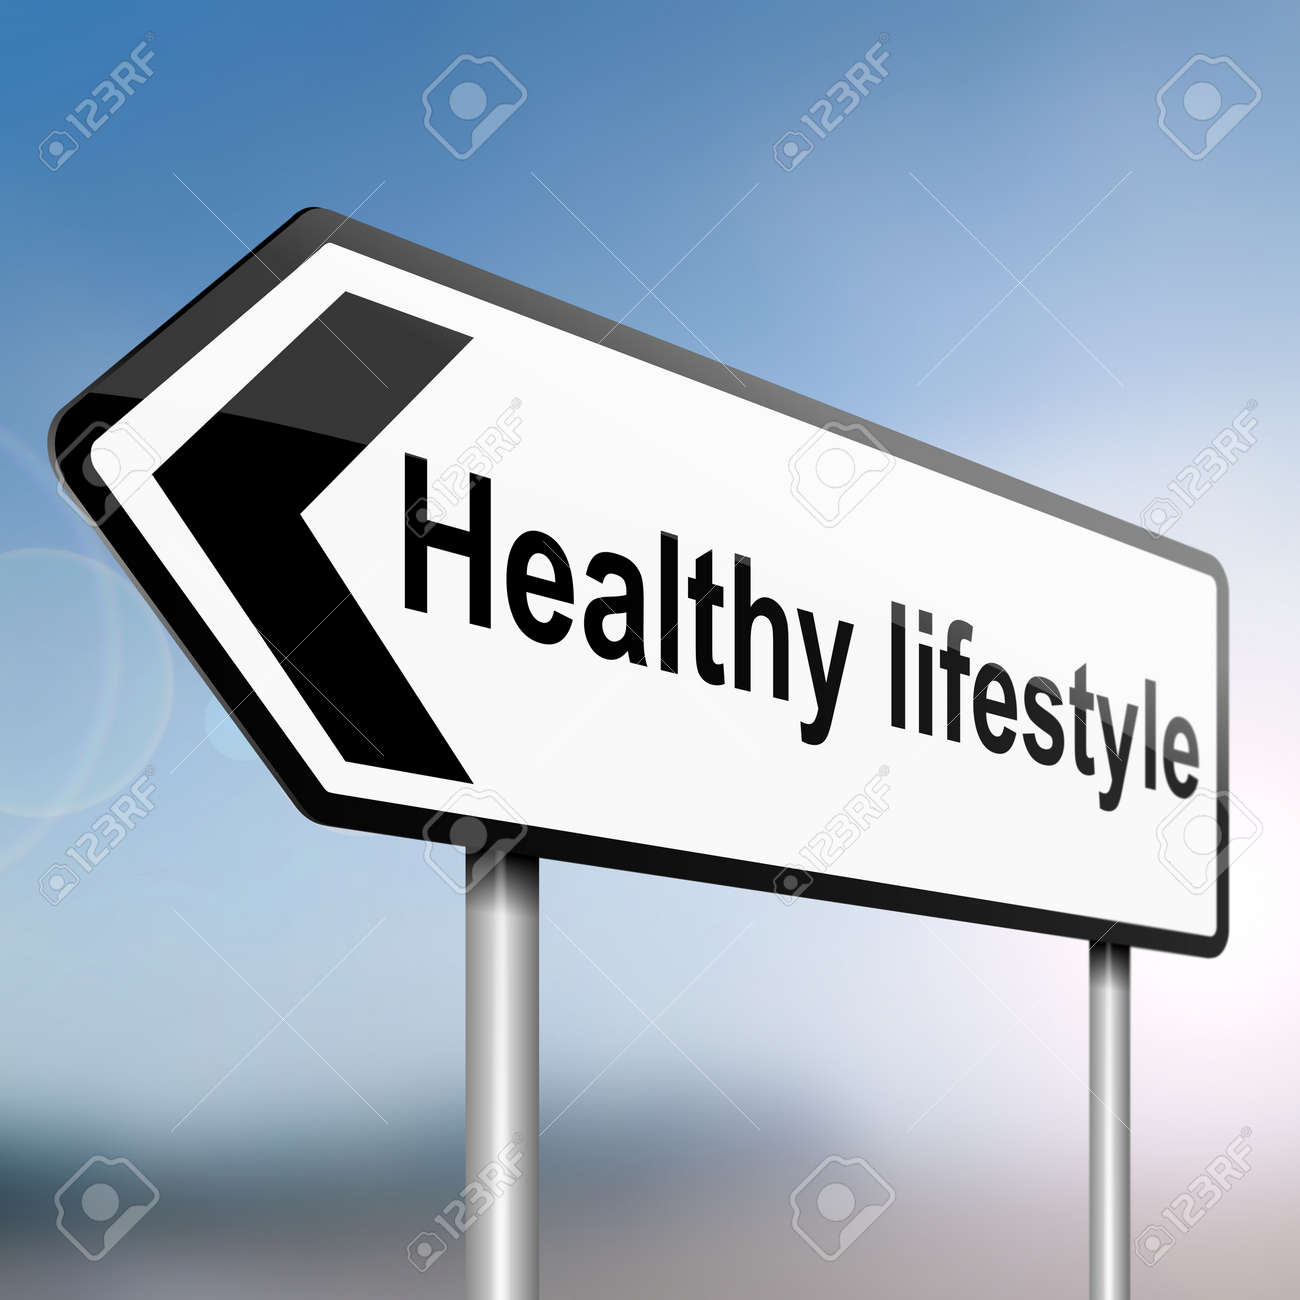 illustration depicting a sign post with directional arrow containing a healthy lifestyle concept  Blurred background Stock Illustration - 13504863